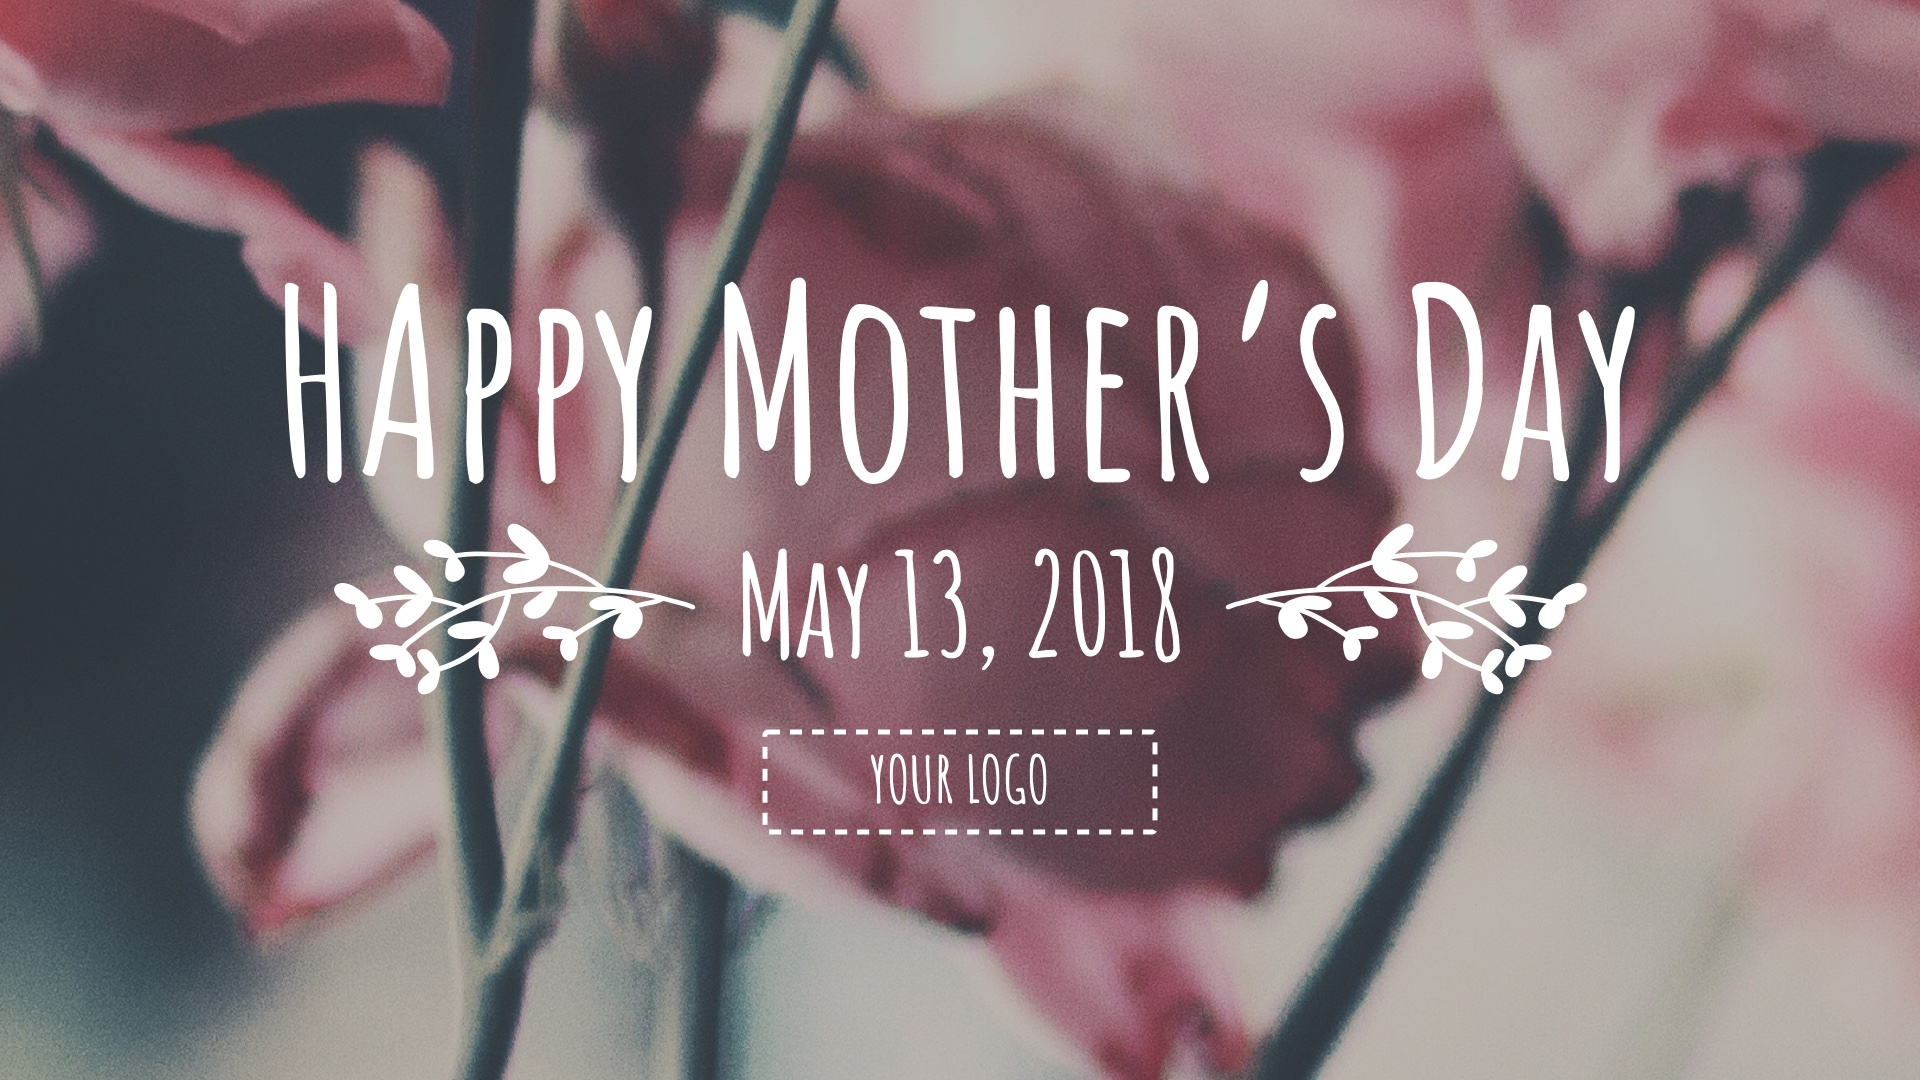 celebrate mom with digital signage